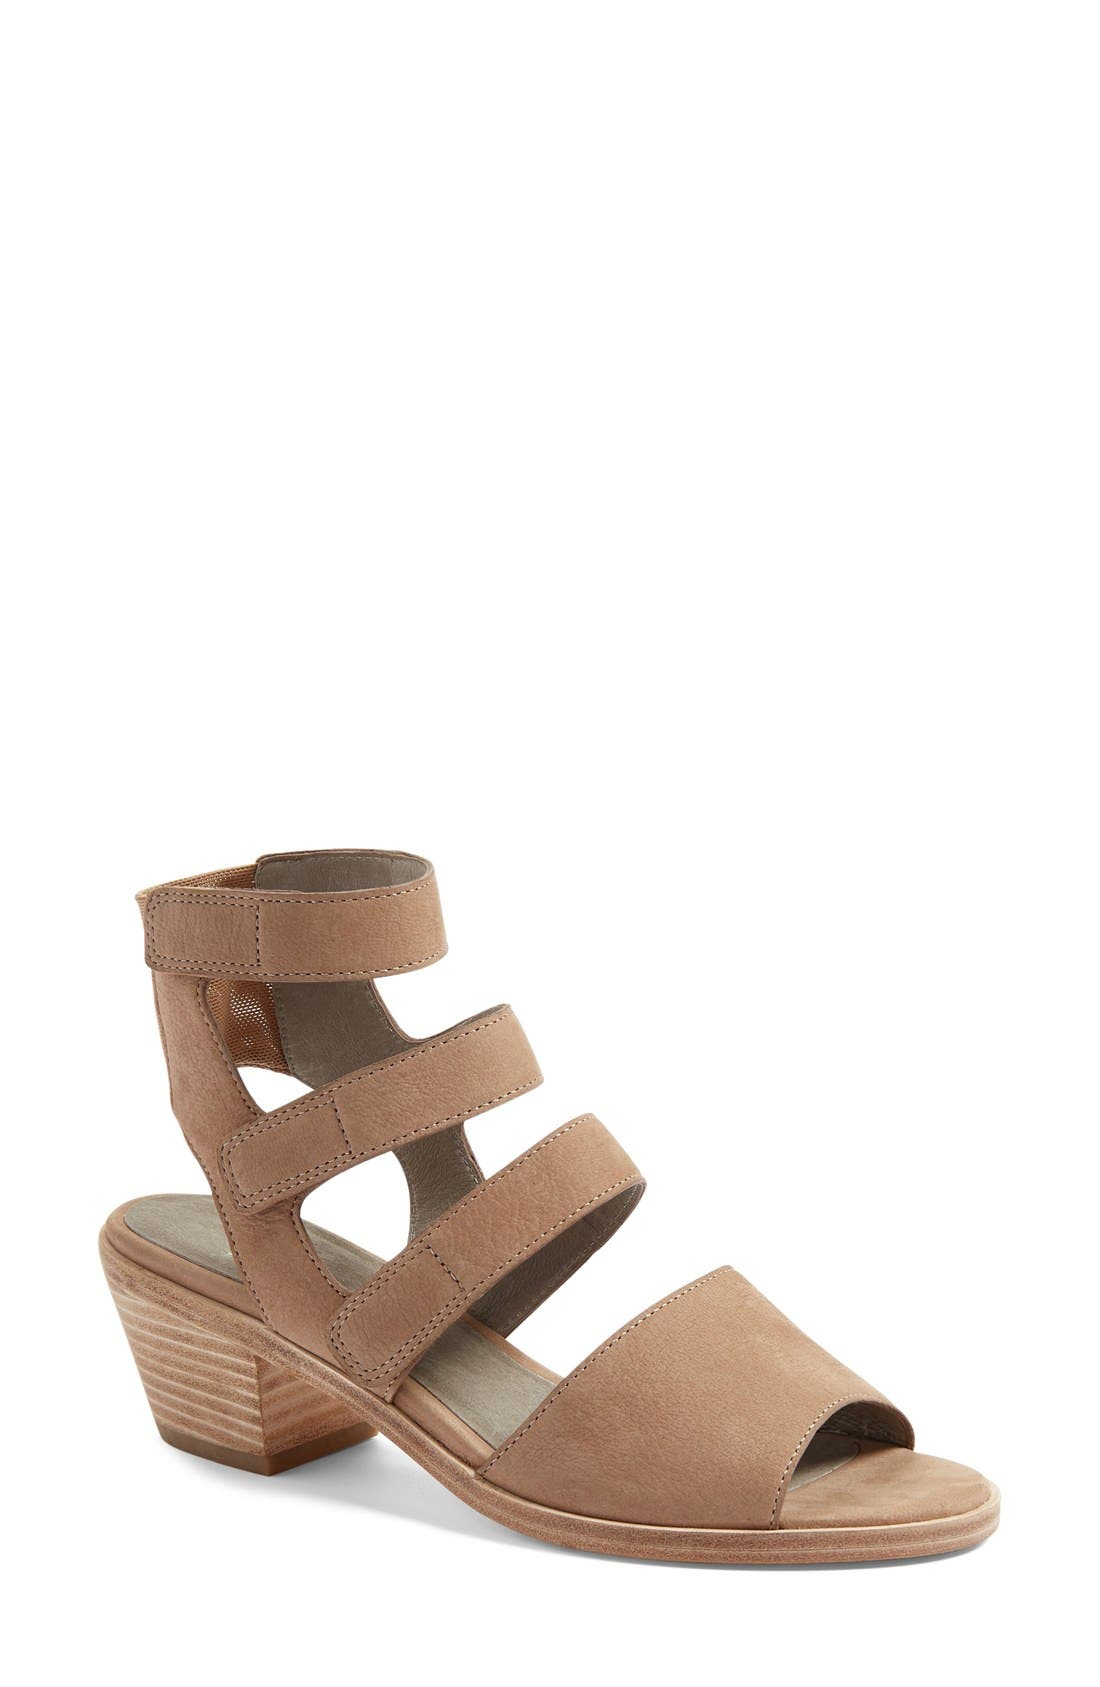 Vessey Strappy Sandal,                         Main,                         color, Earth Leather